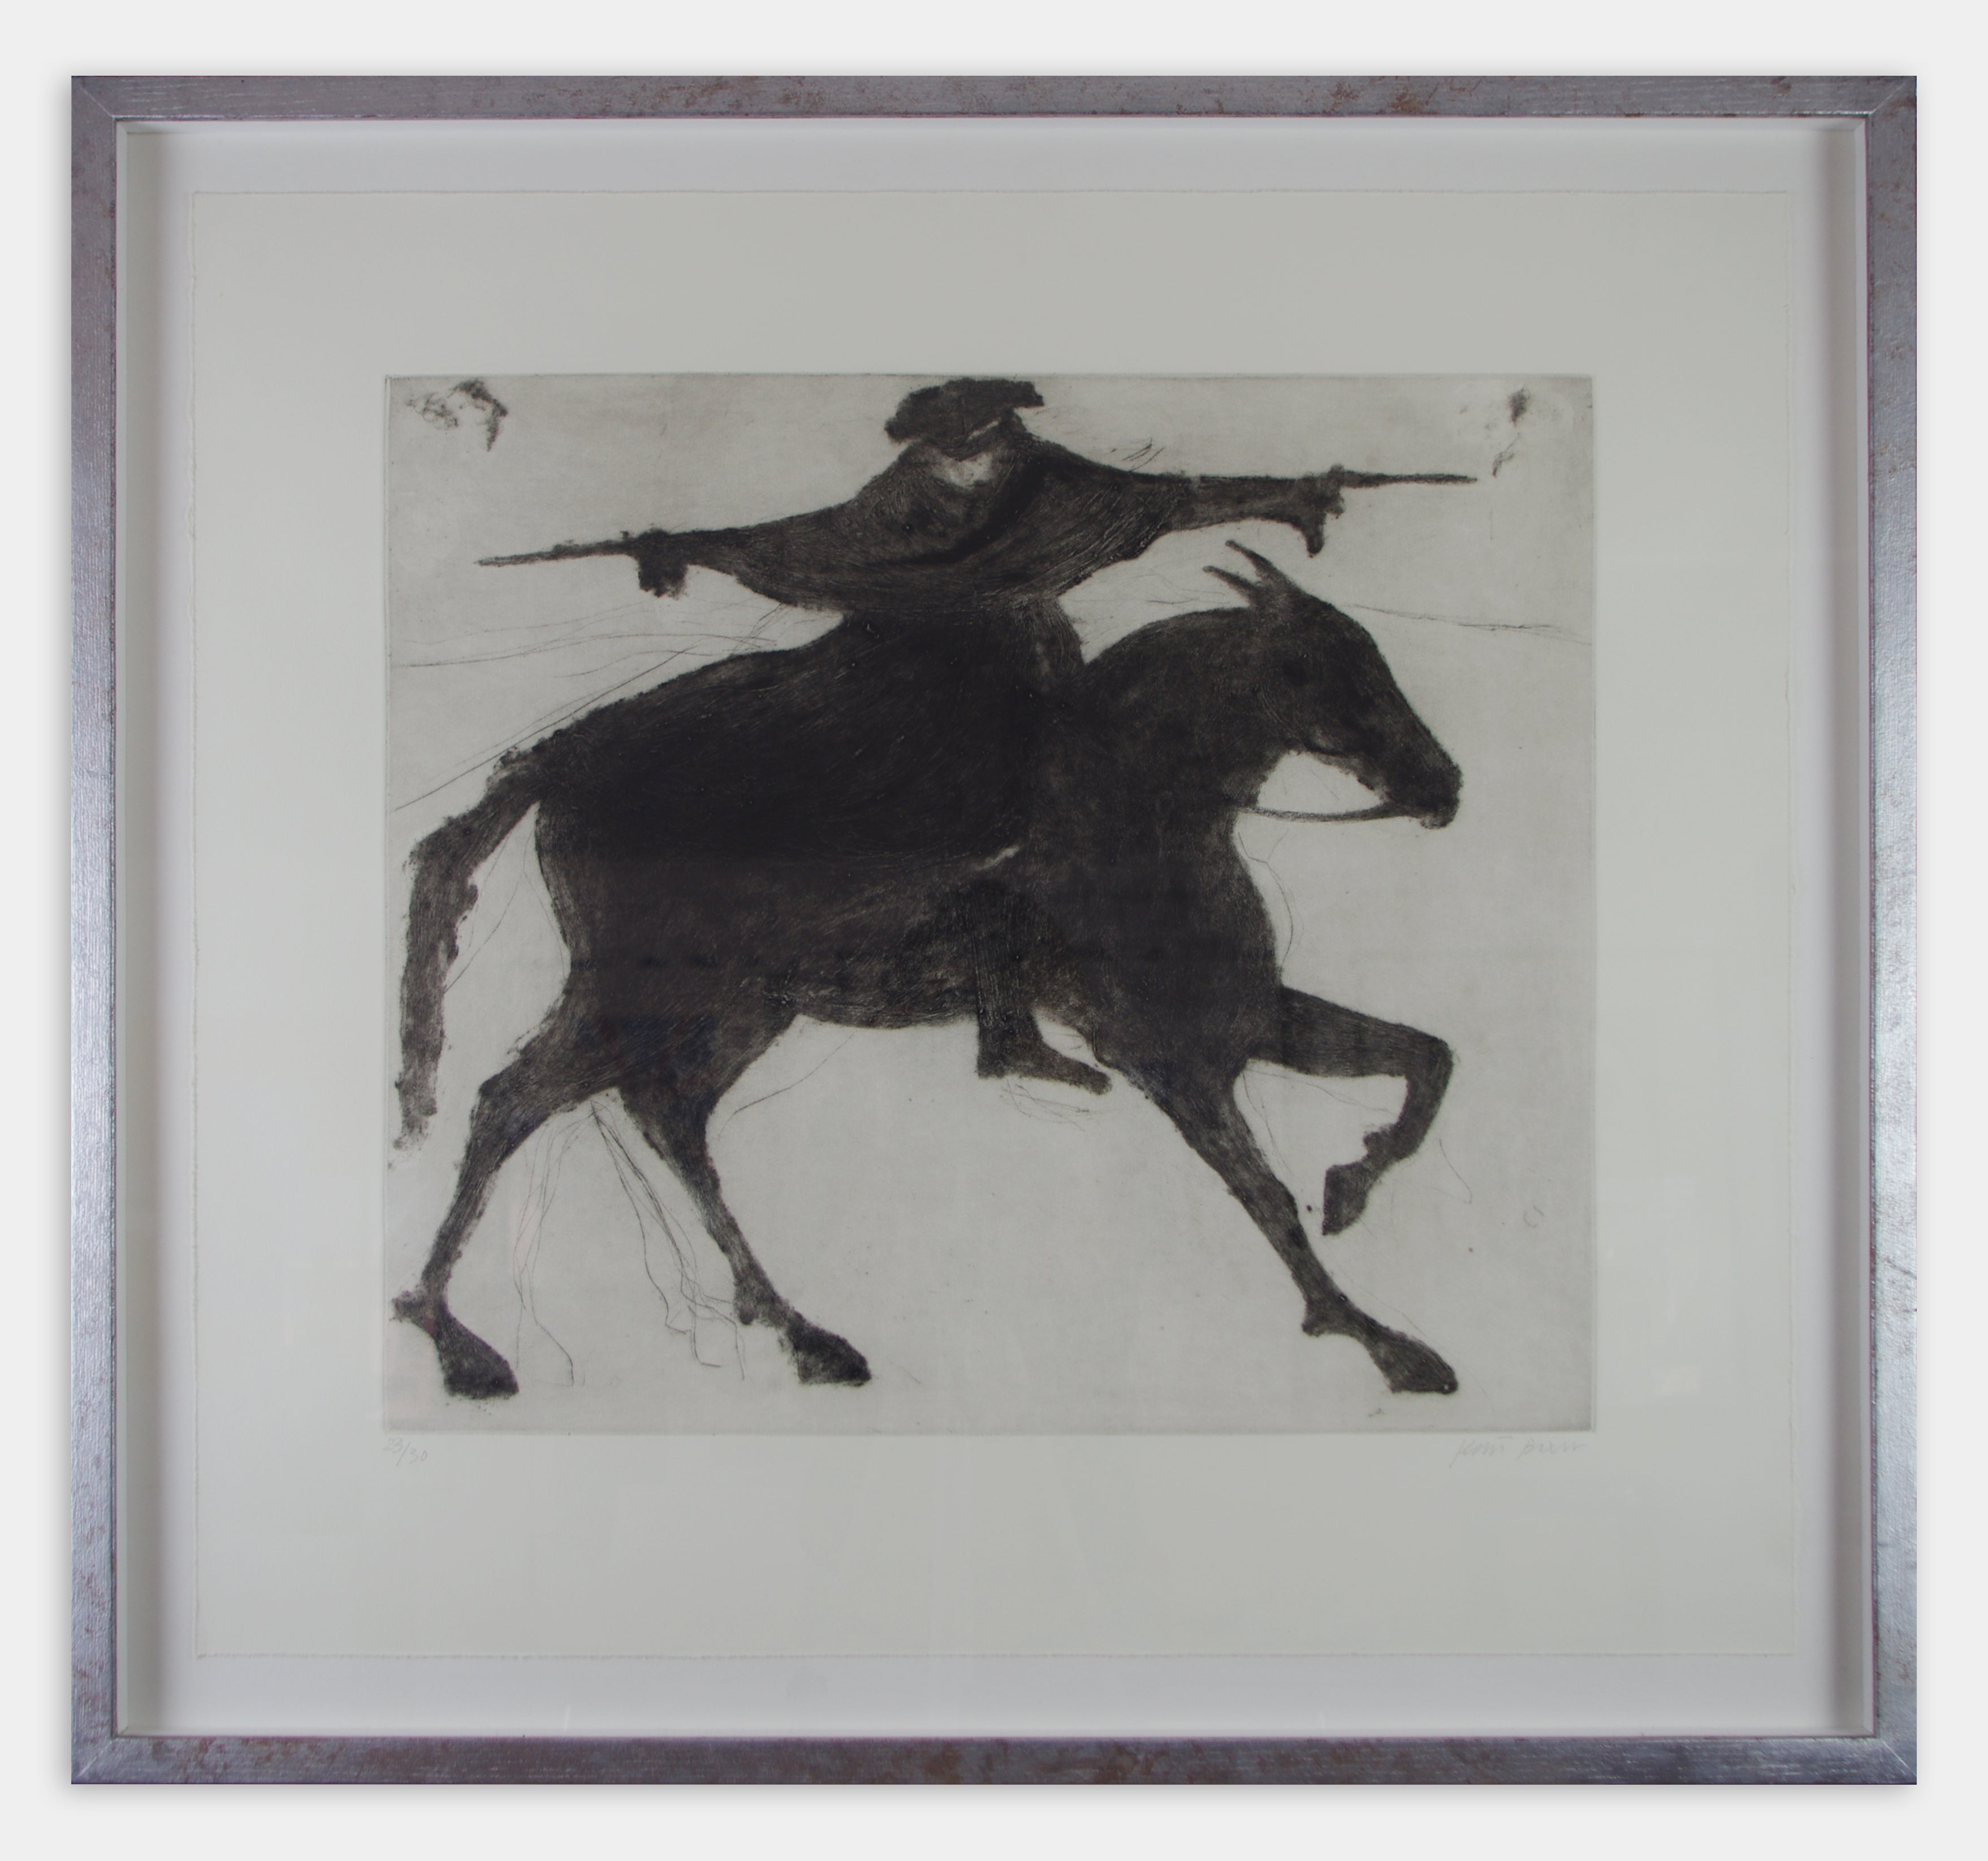 Dick Turpin on his way to York (Framed)